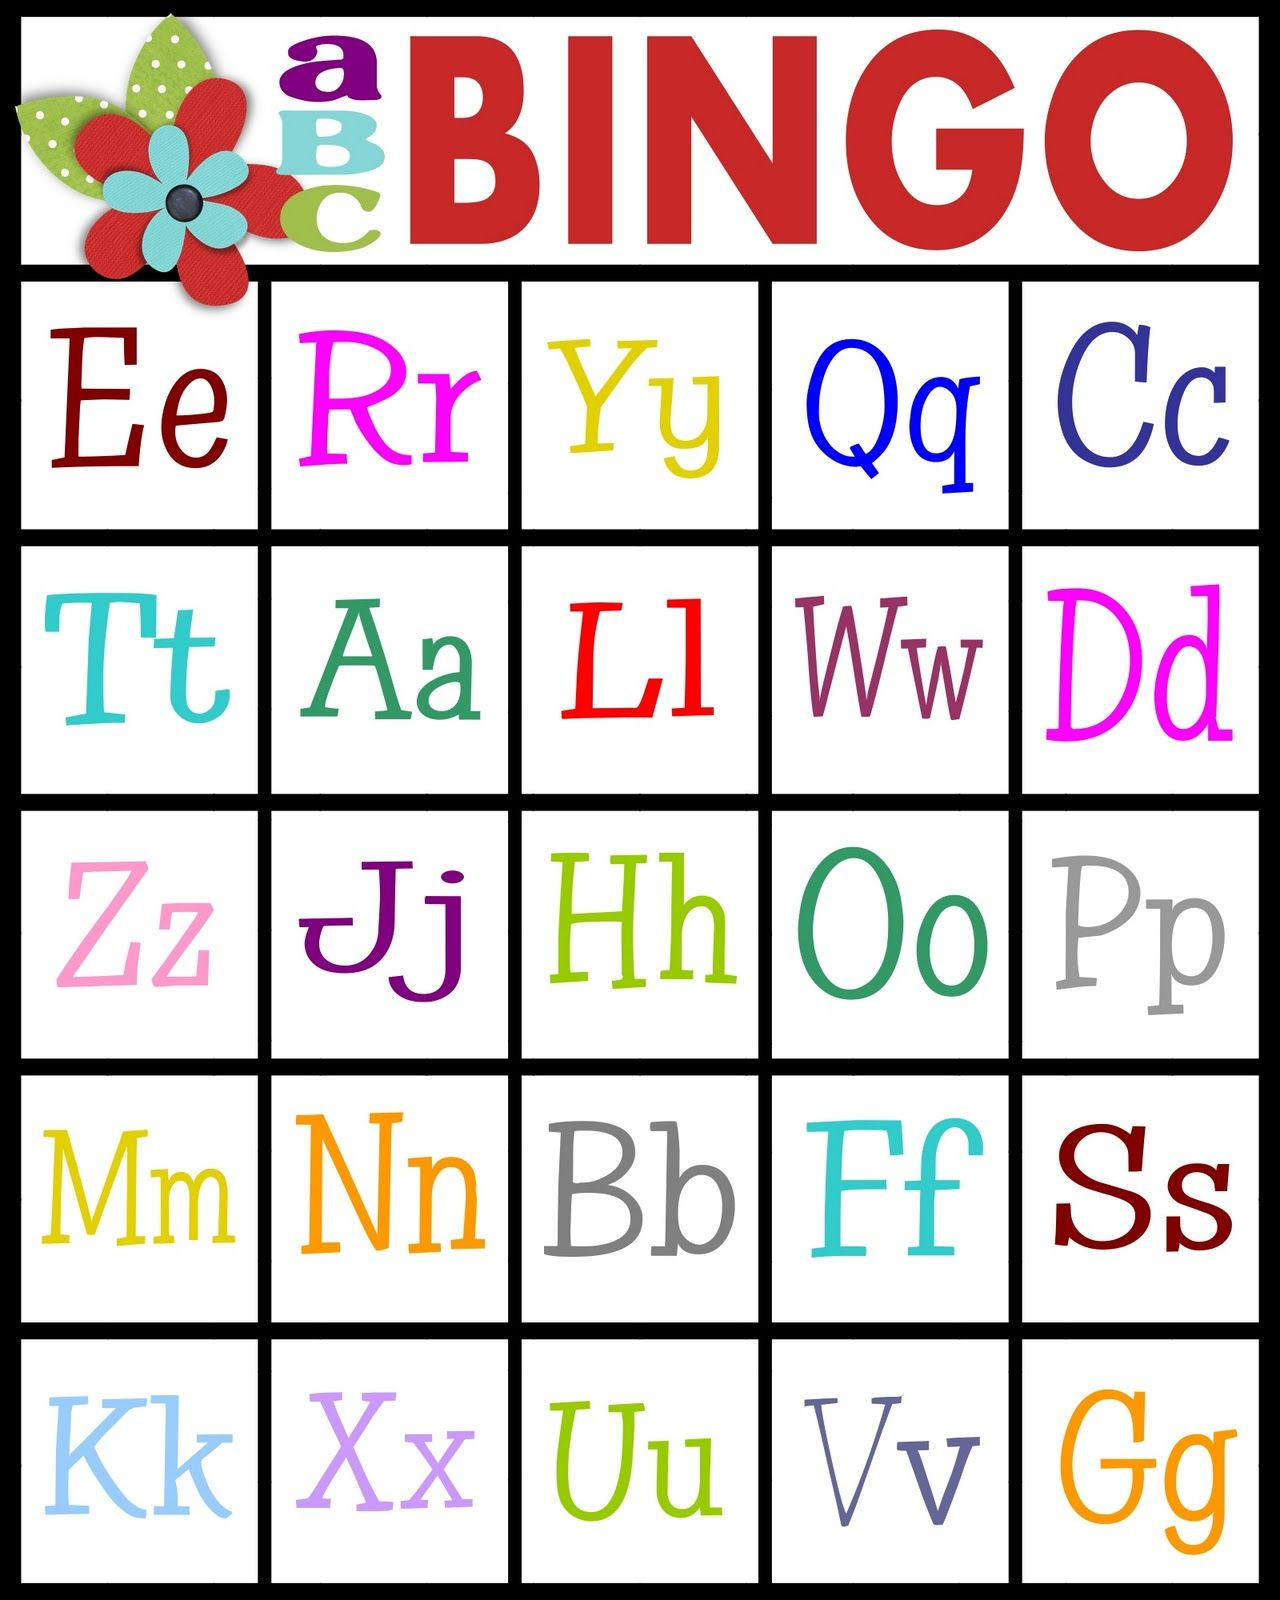 For Teaching Letter Recognition Or Letter Sounds | Teaching